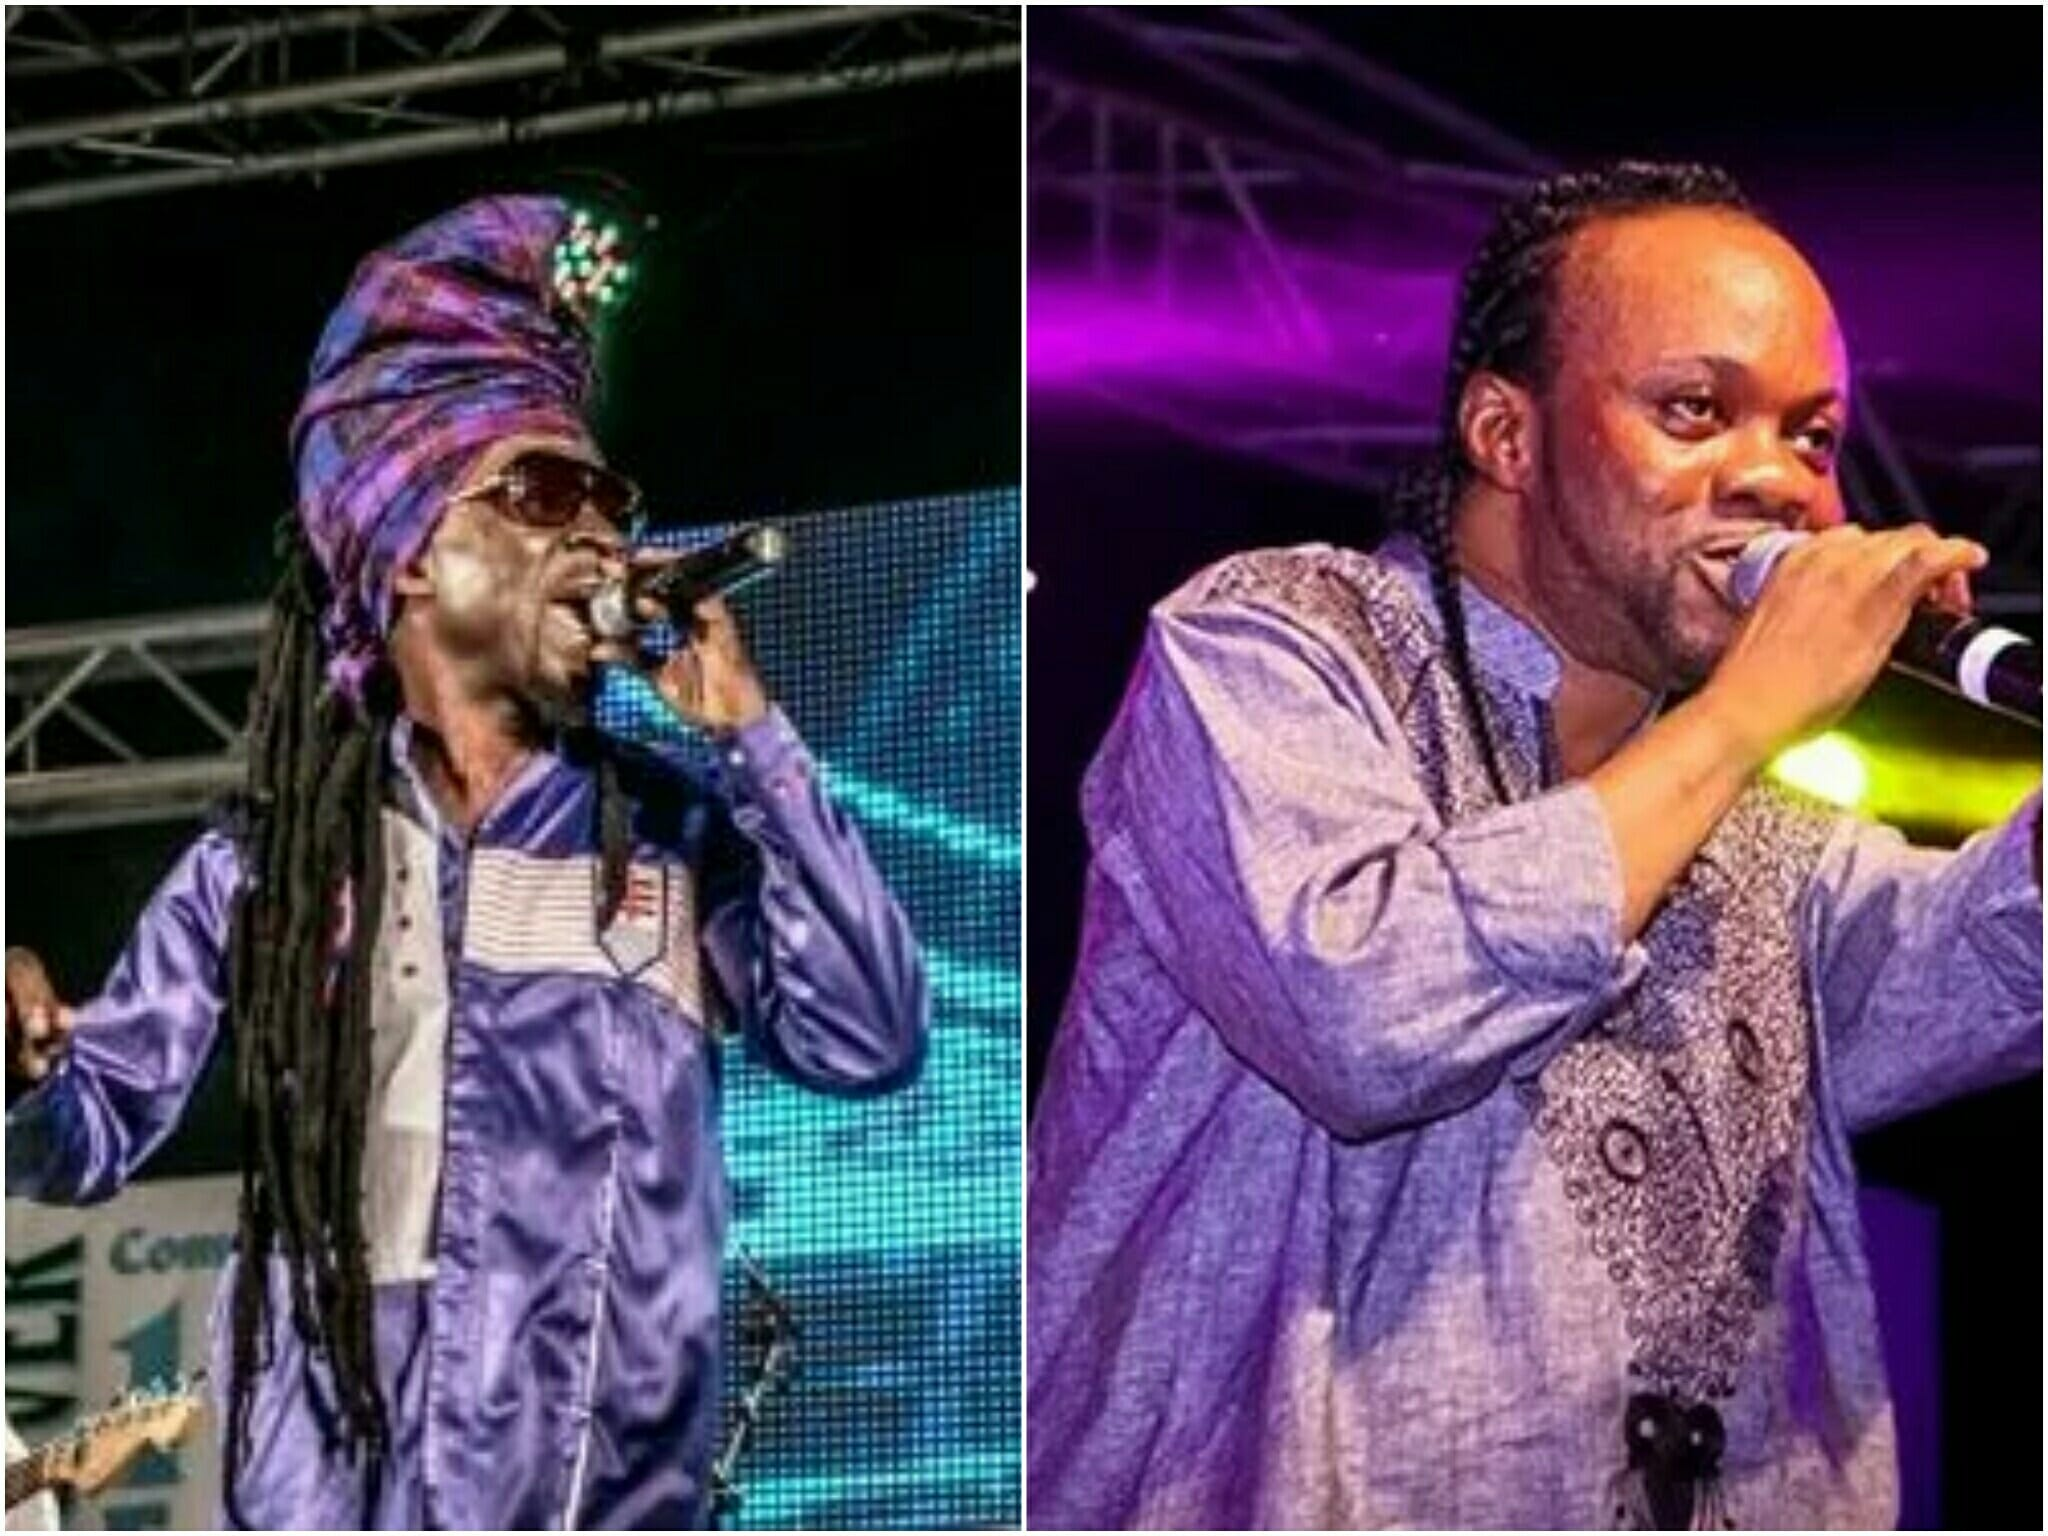 Kojo Antwi and Daddy Lumba, who is superior